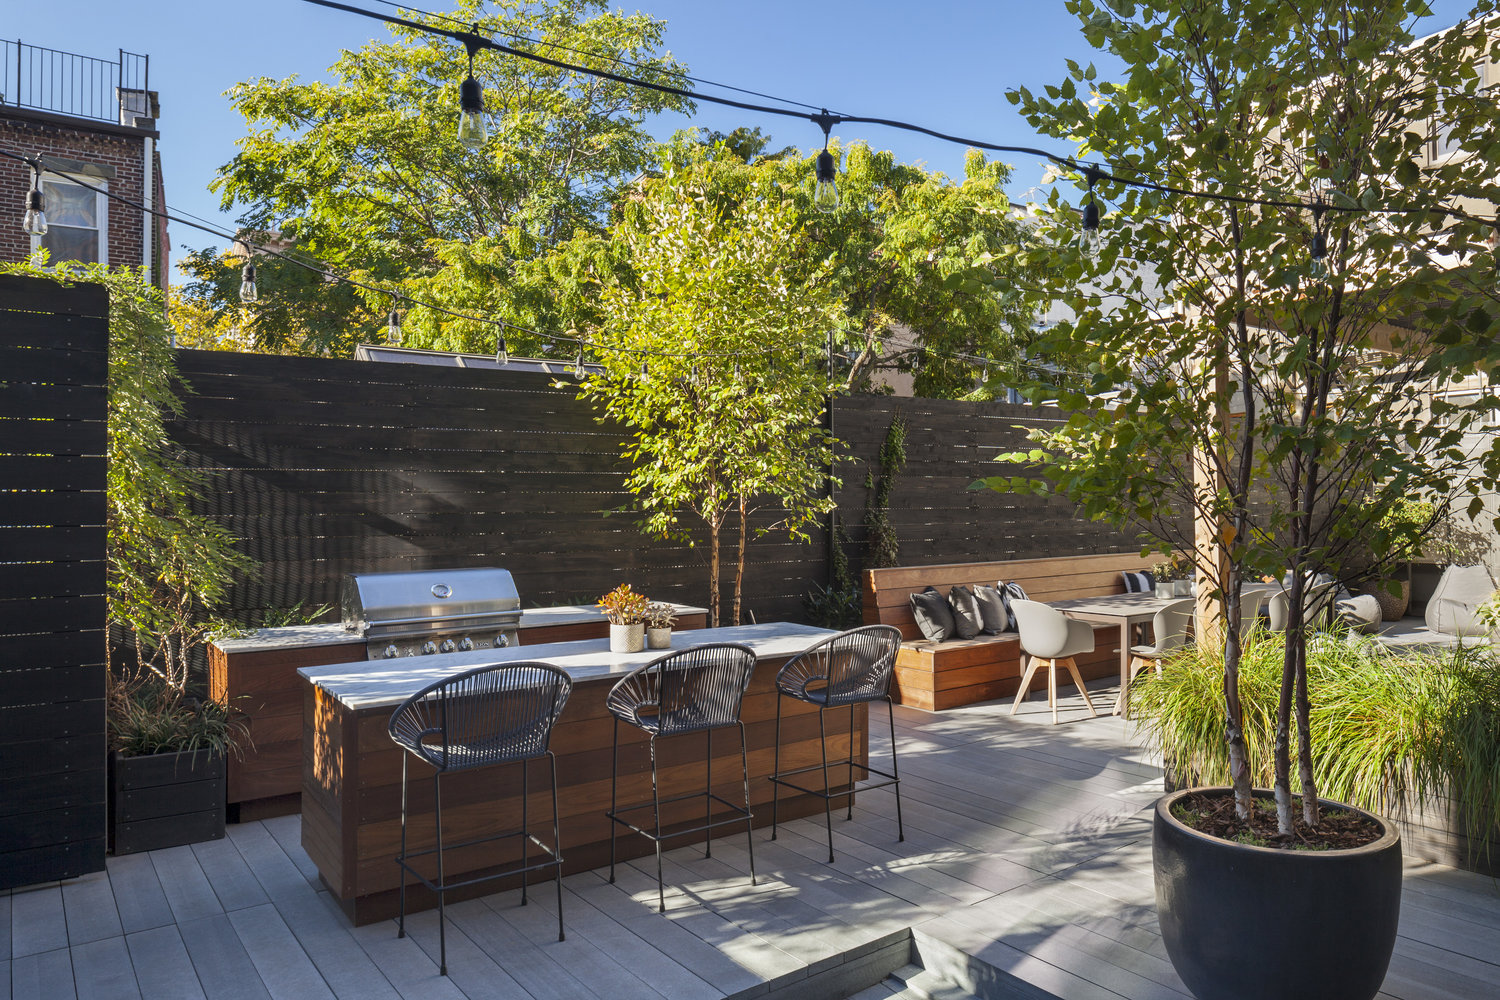 Outdoor Kitchen On Cobblestone Patio